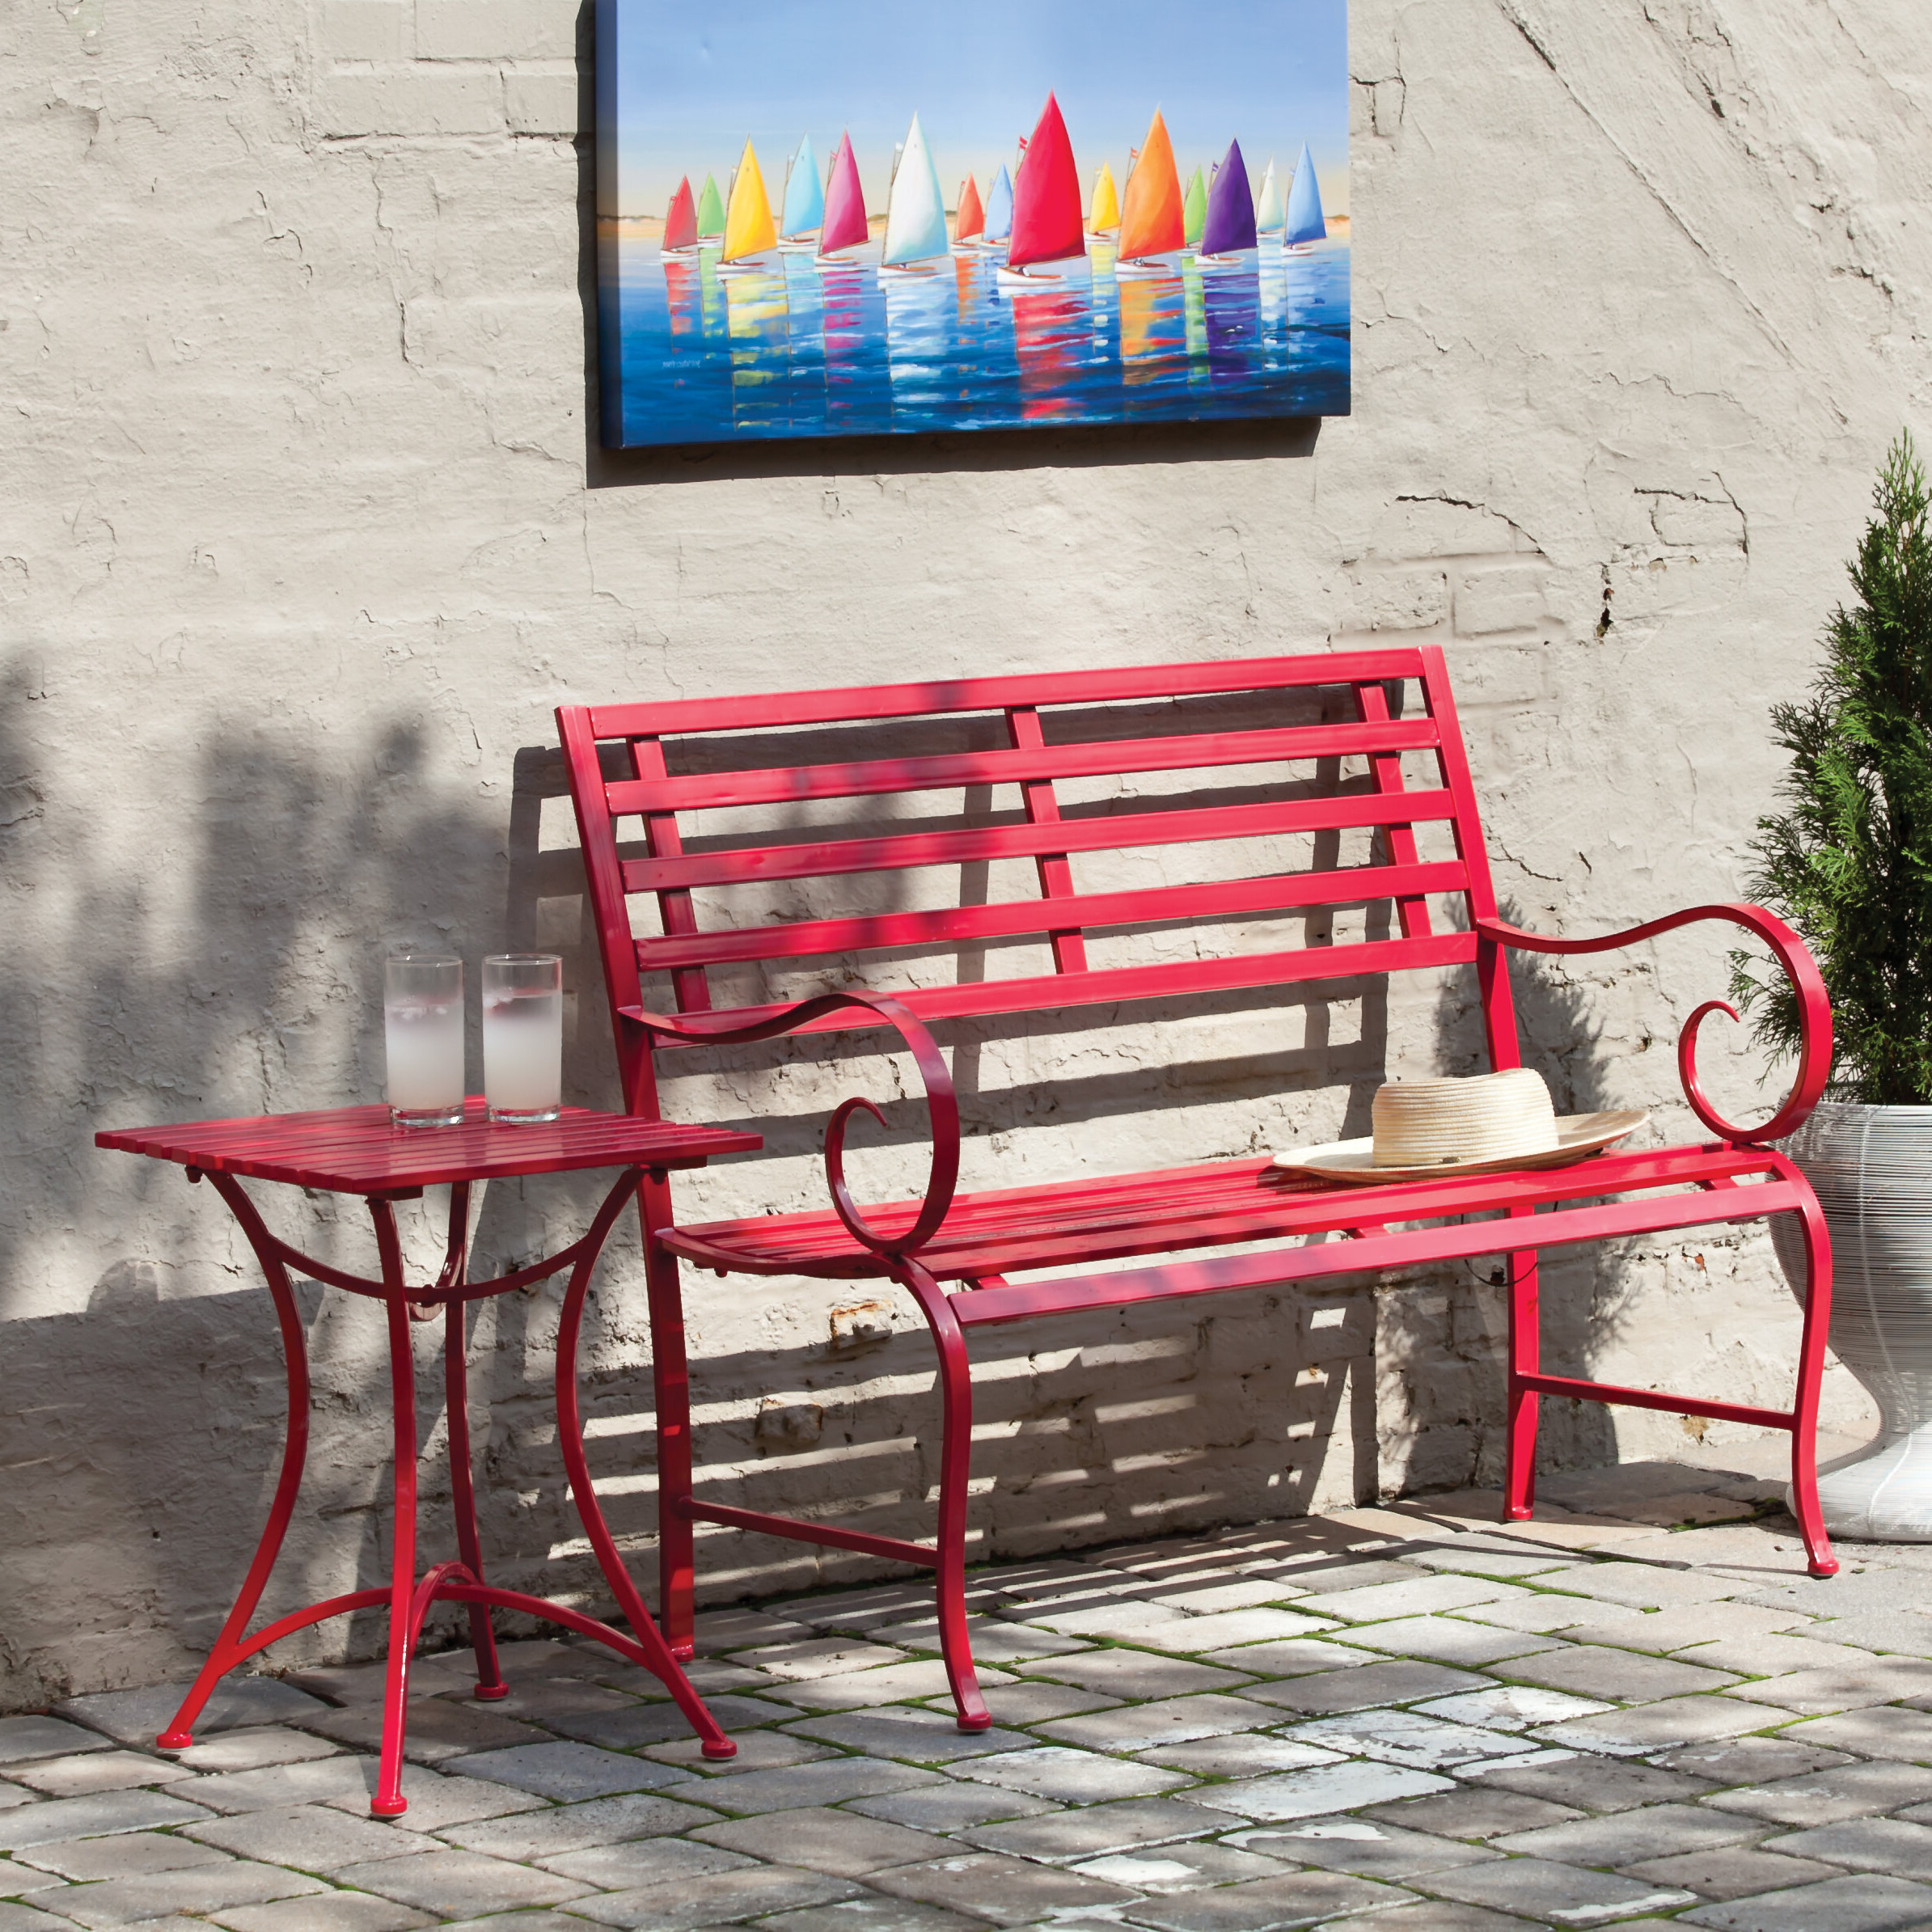 Widely Used Zev Blue Fish Metal Garden Benches Pertaining To Harding Garden Bench (View 7 of 30)